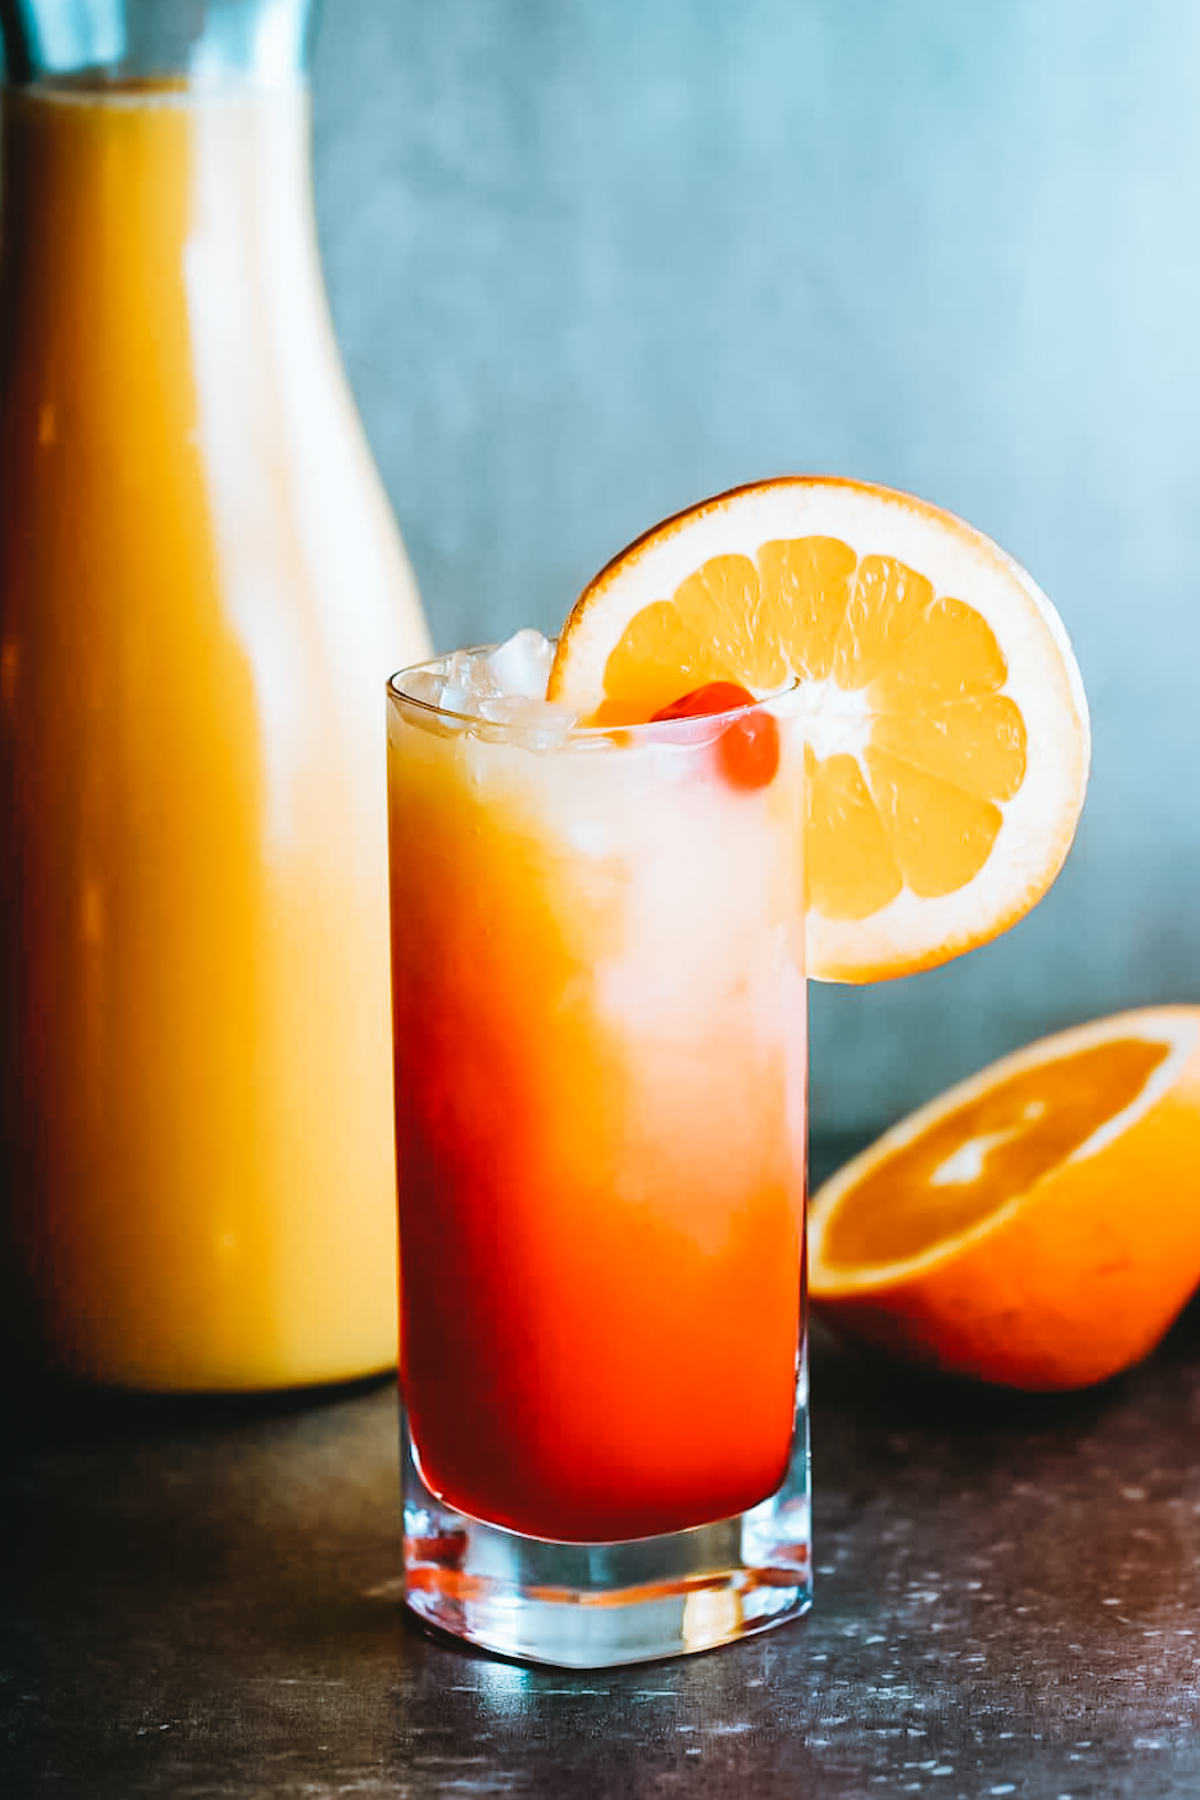 A Beautiful Brunchtime Beverage – Tribe's CBD Tequila Sunrise